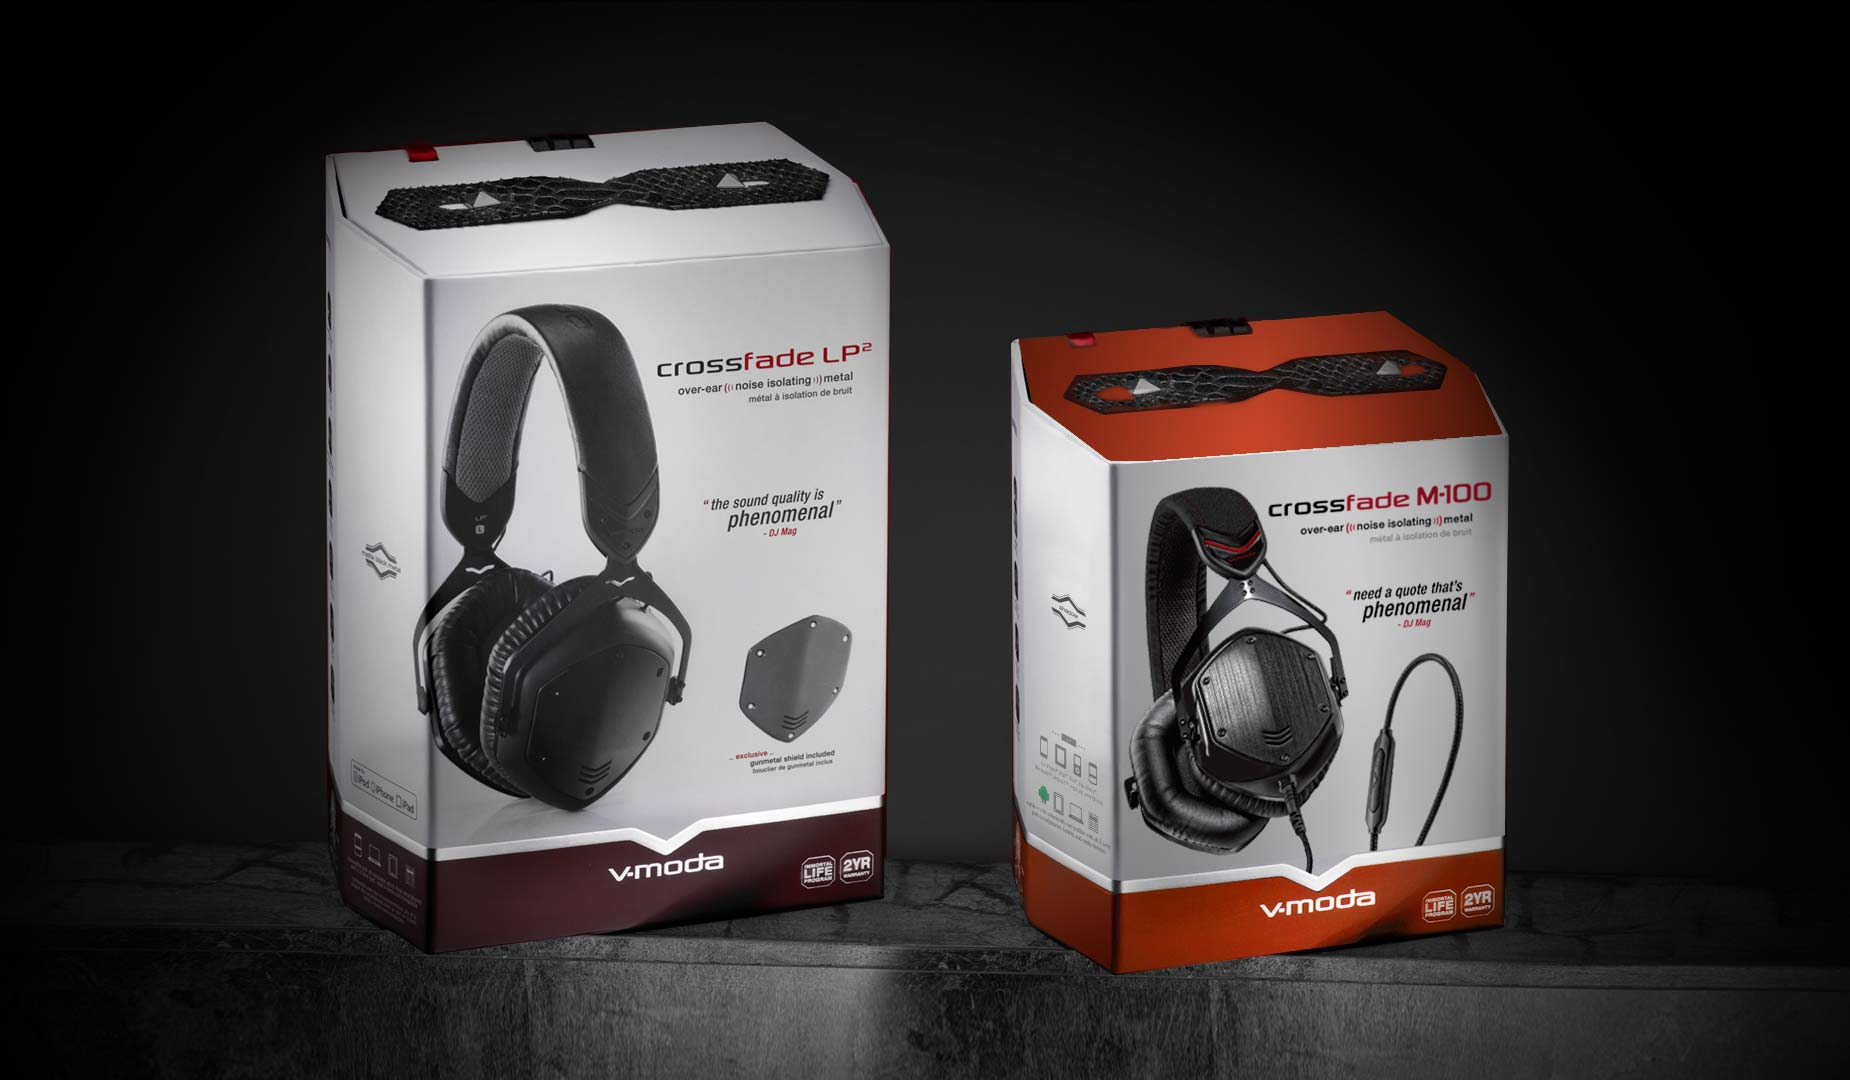 Crossfade M-100 Package Comparison